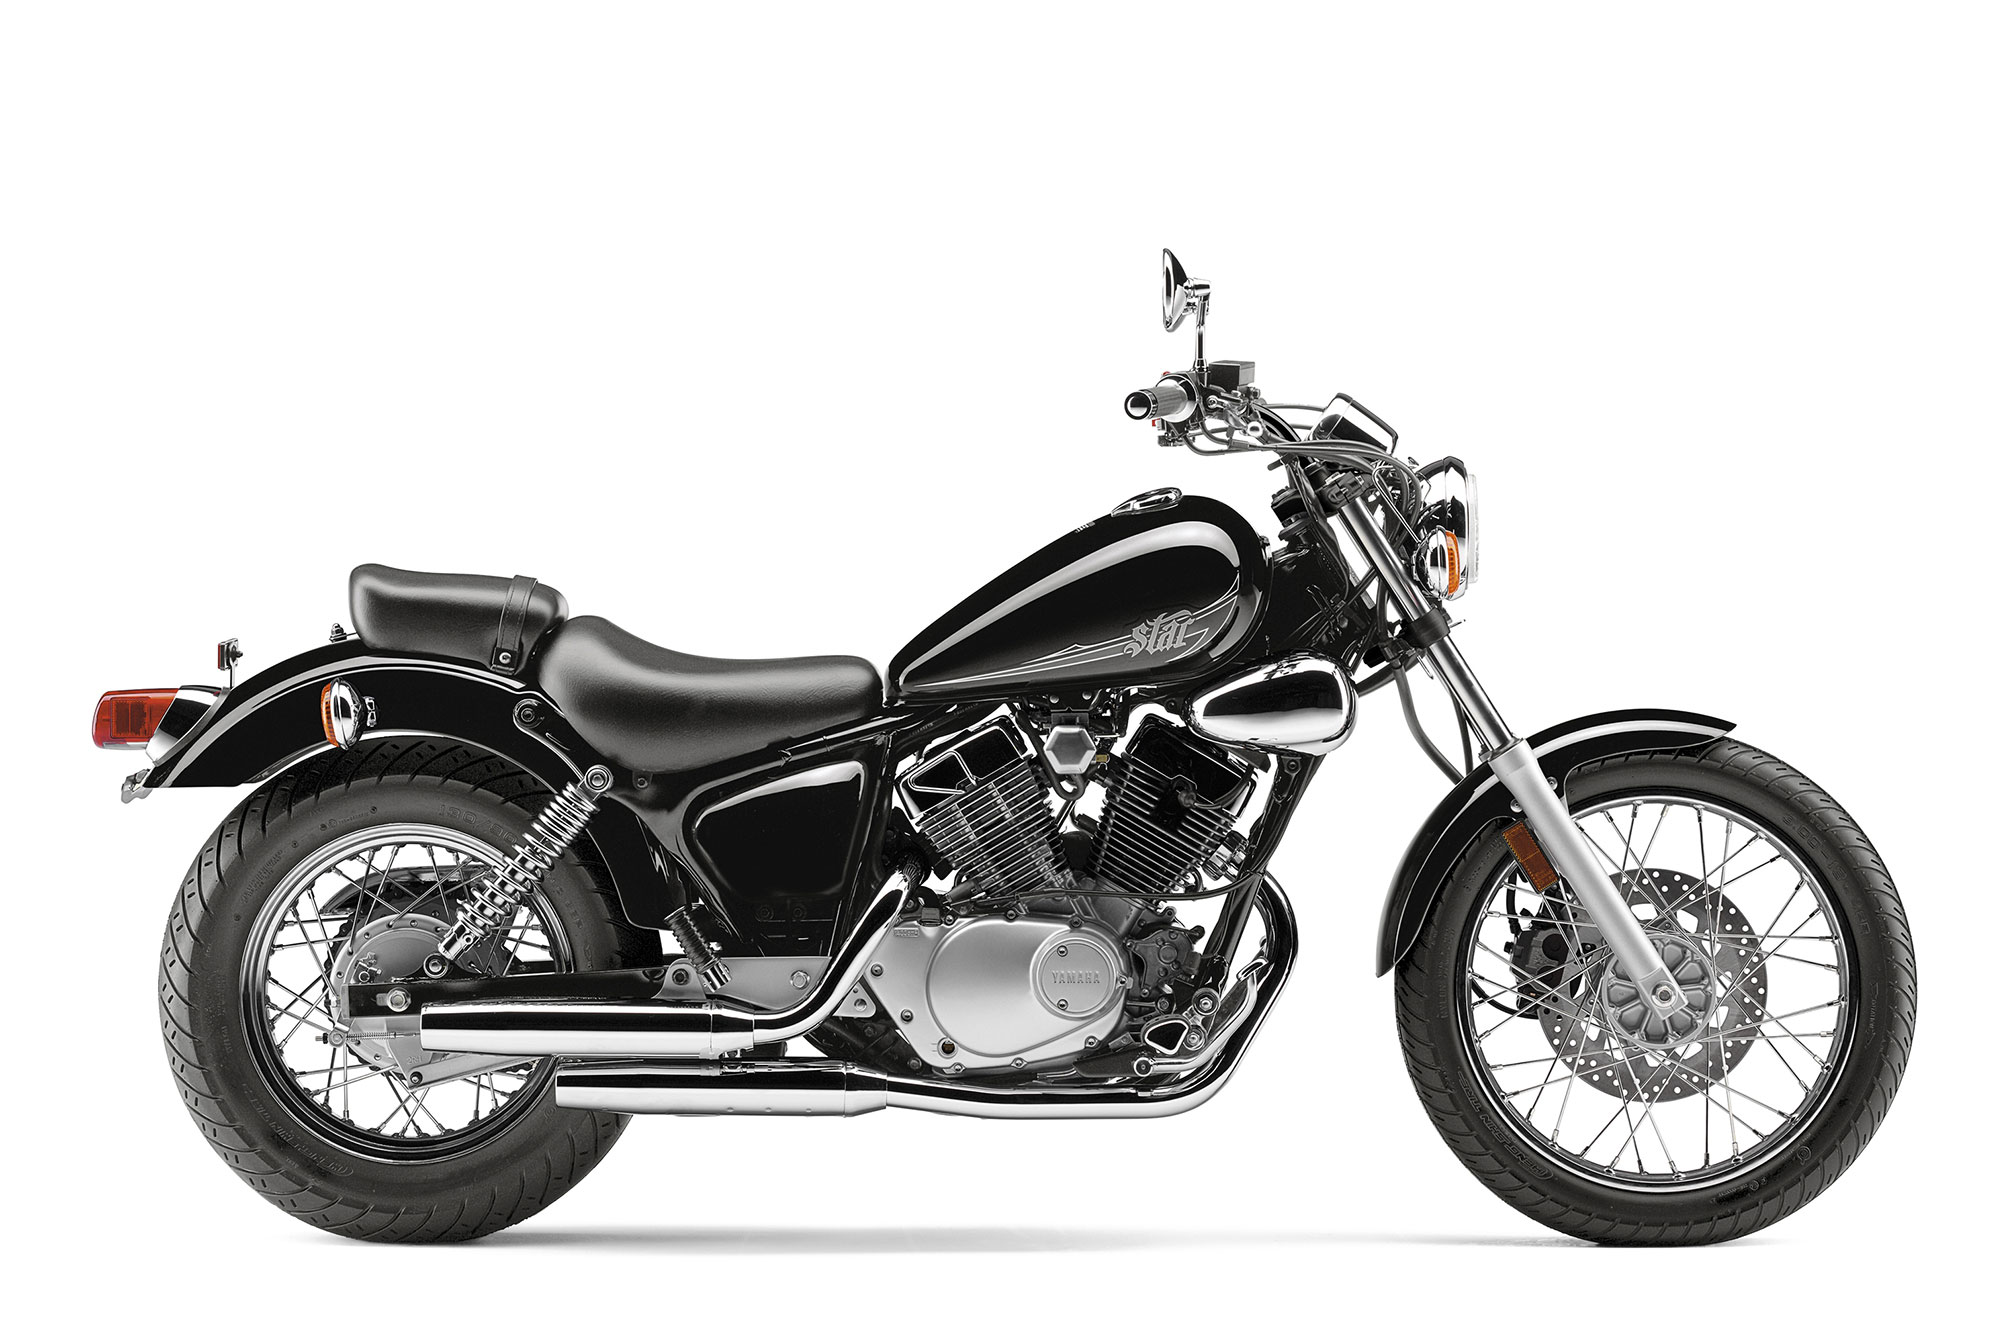 2015 yamaha v star 250 review for Yamaha motorcycle store near me